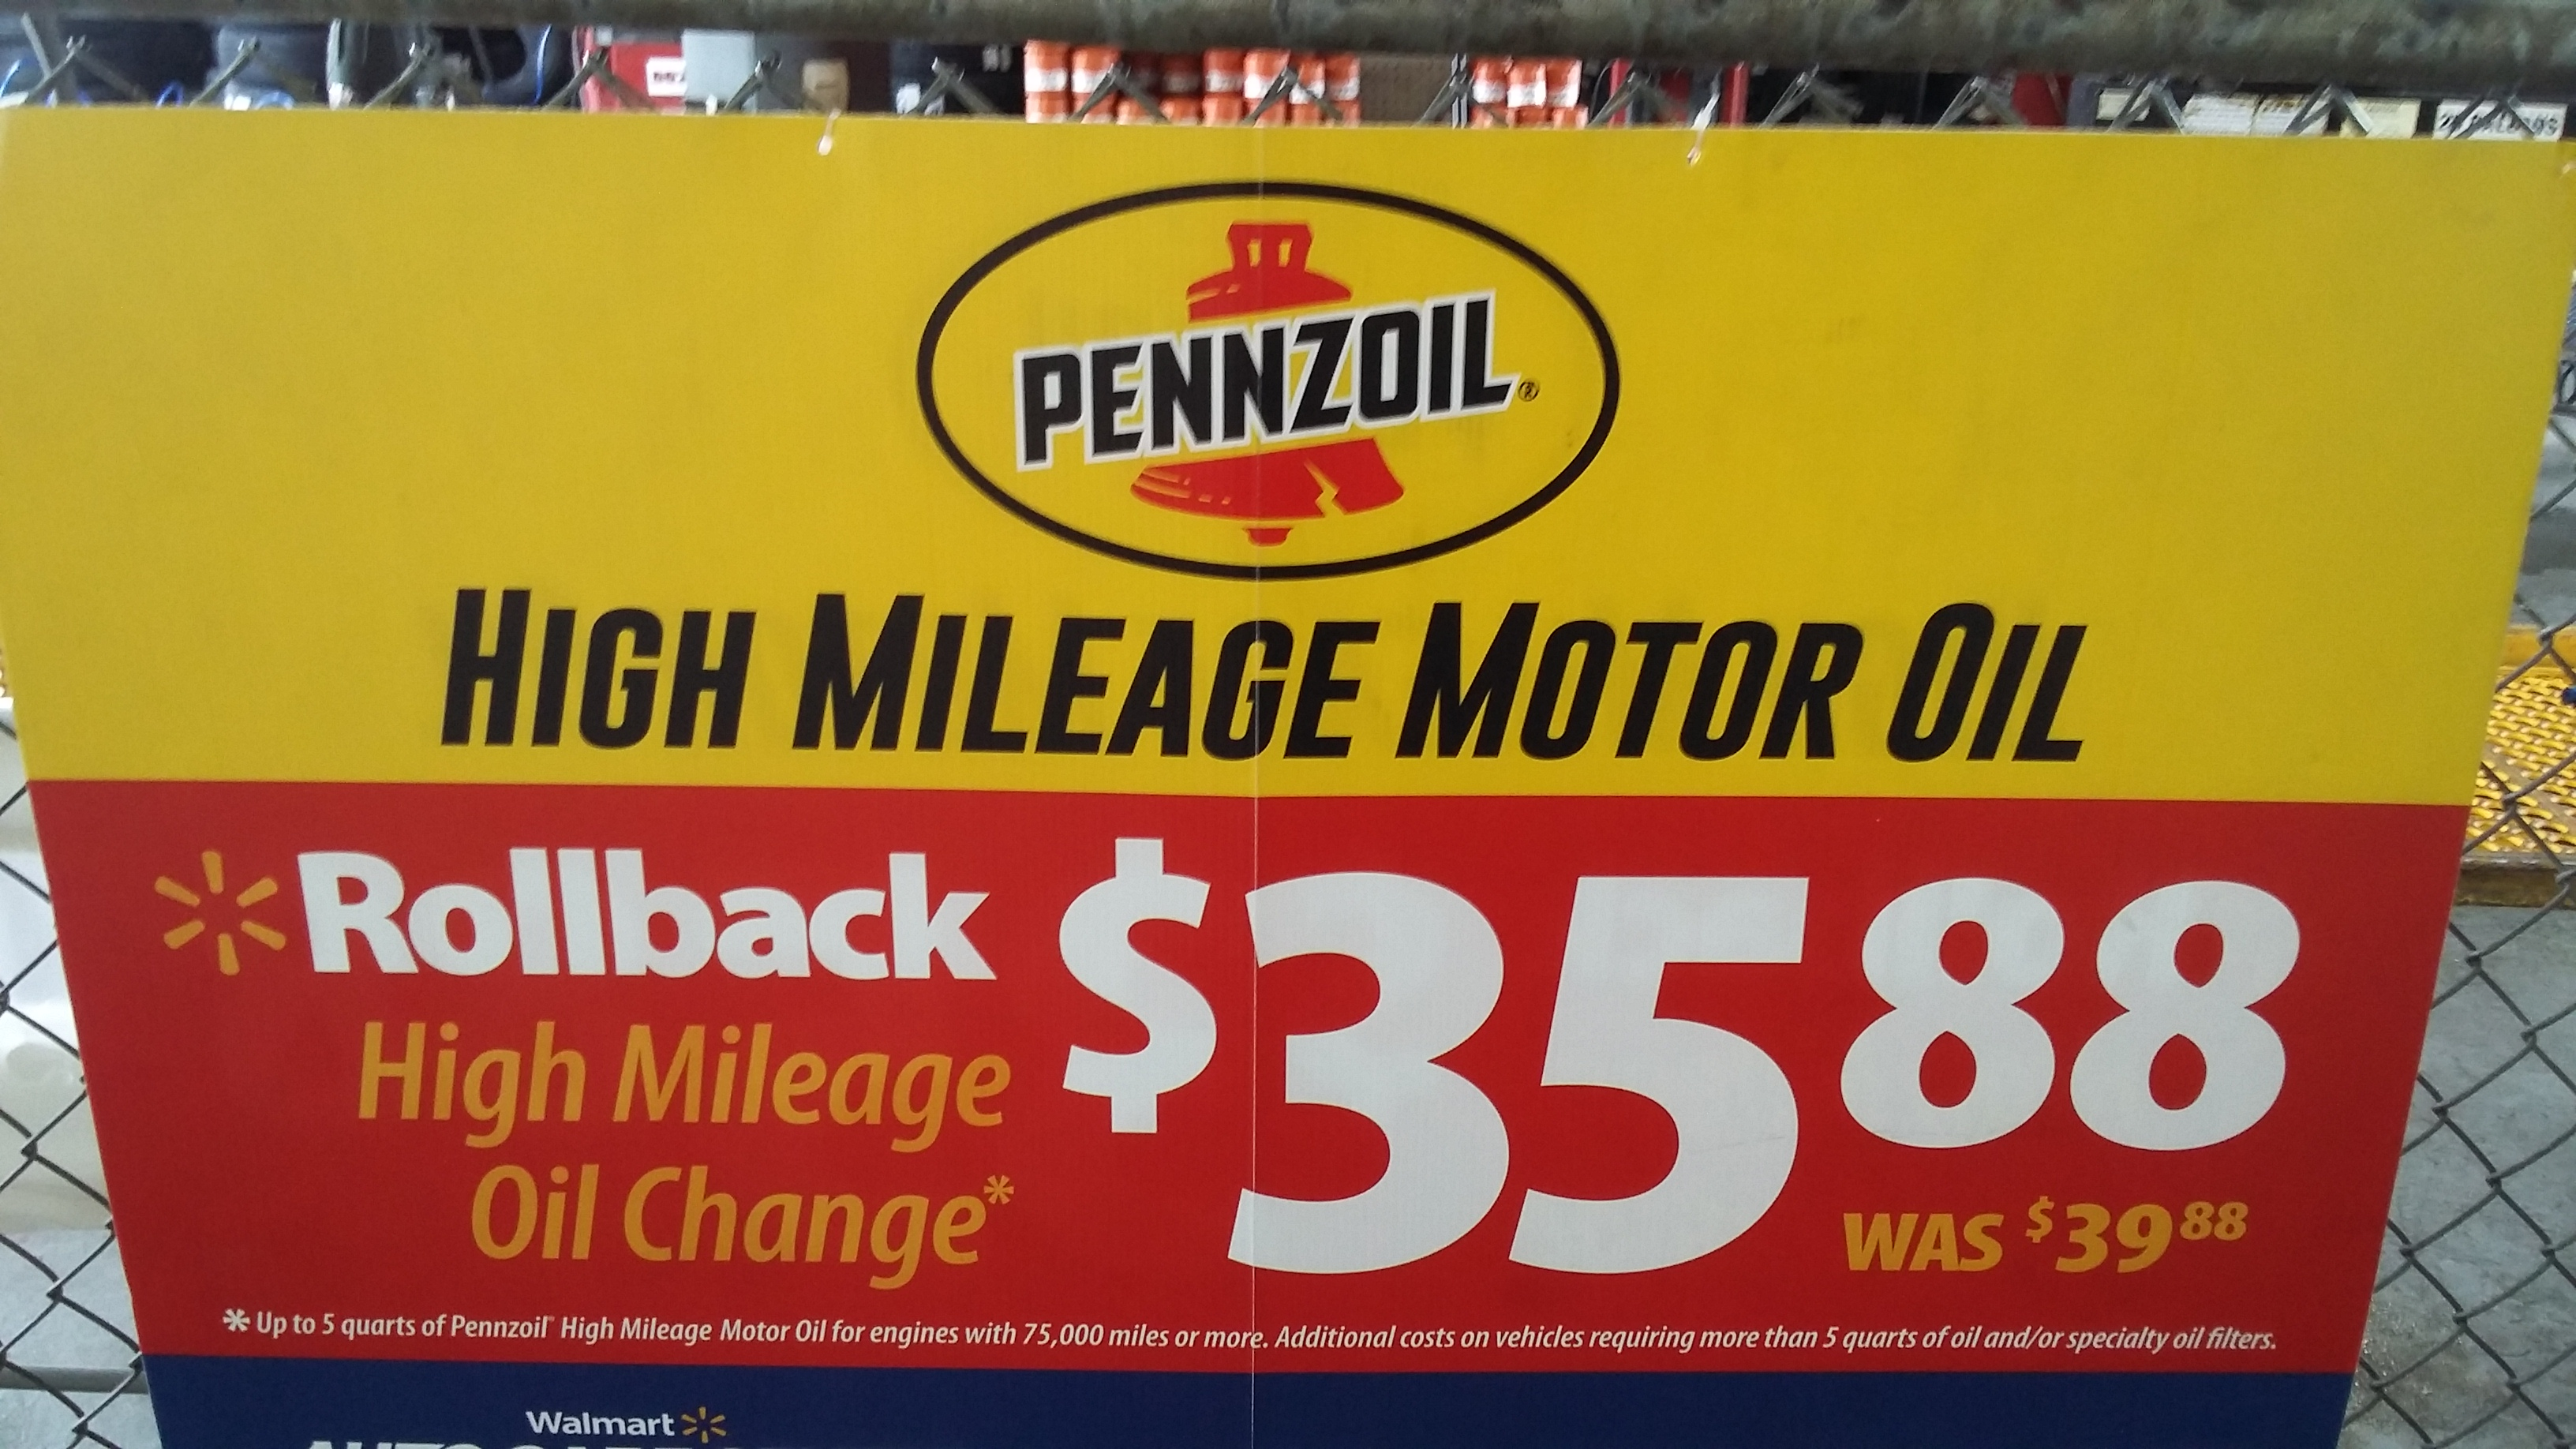 DIY Tablet Photo Book, plus Rollback On Pennzoil at Walmart ACC #RoadTripOil #CollectiveBias #ad